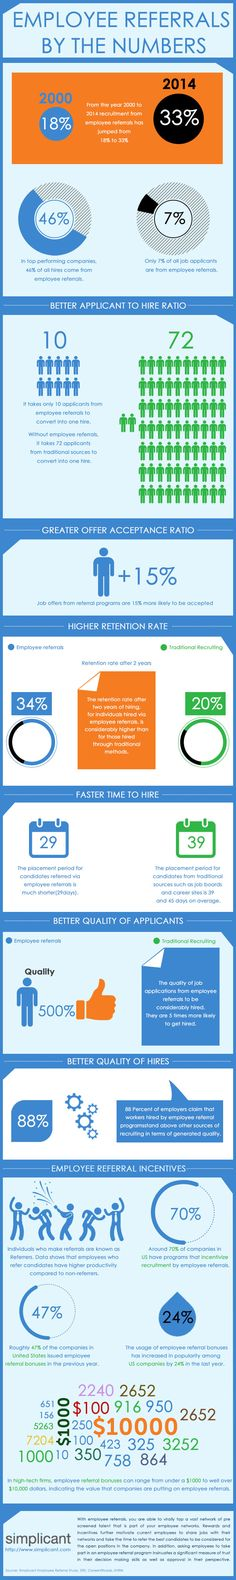 Employee Referrals by the numbers: An Infographic by Simplicant